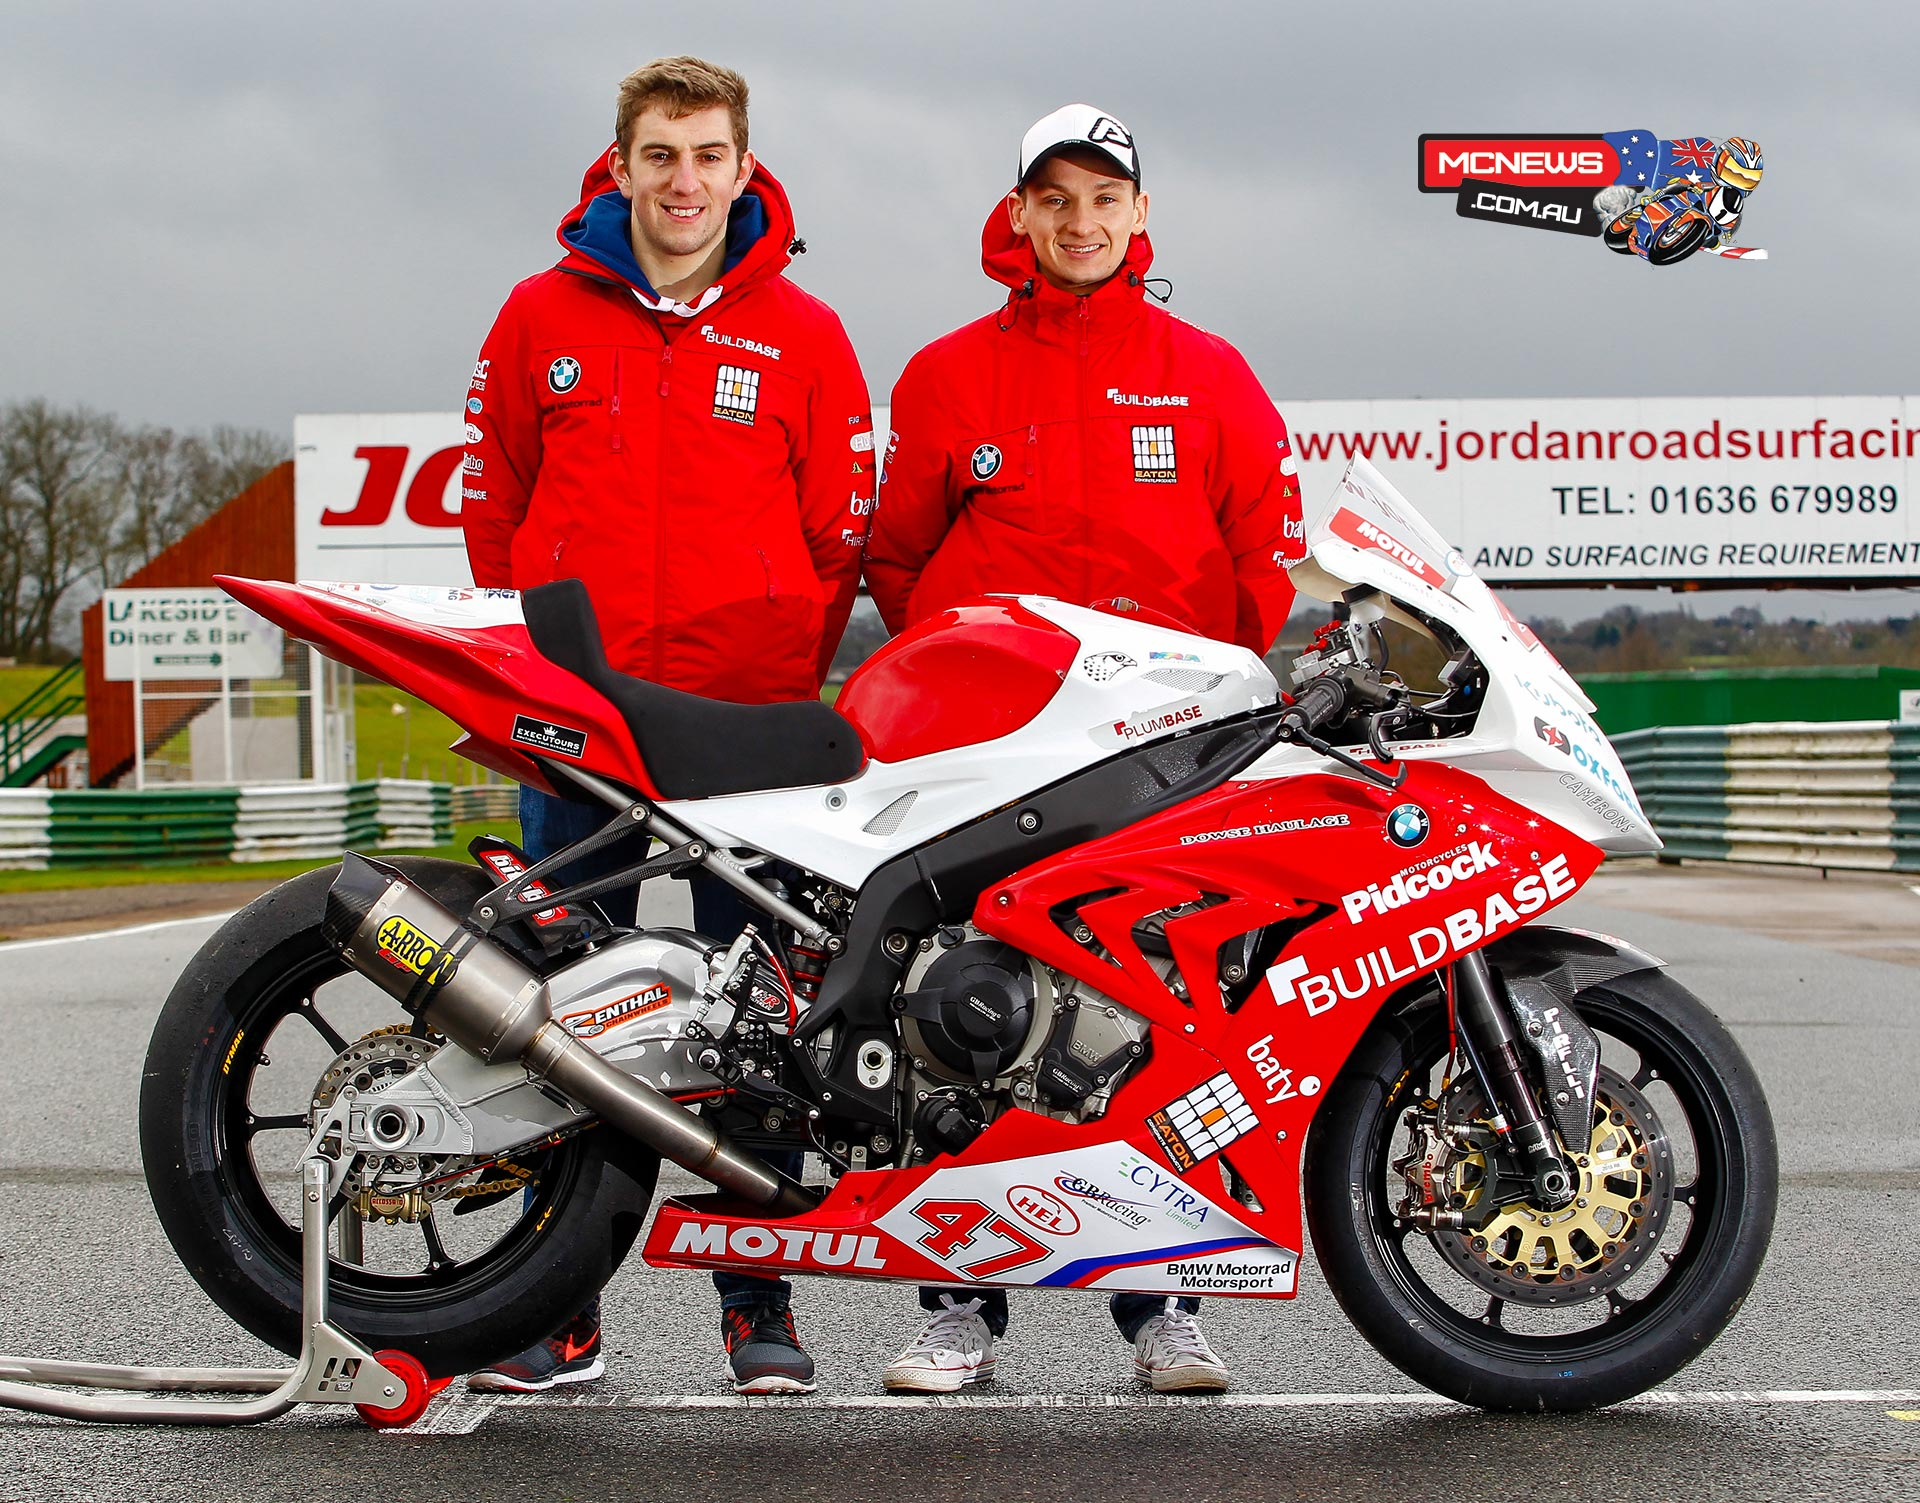 Richard Cooper joins Lee Jackson at Buildbase BMW for 2016 MCE BSB